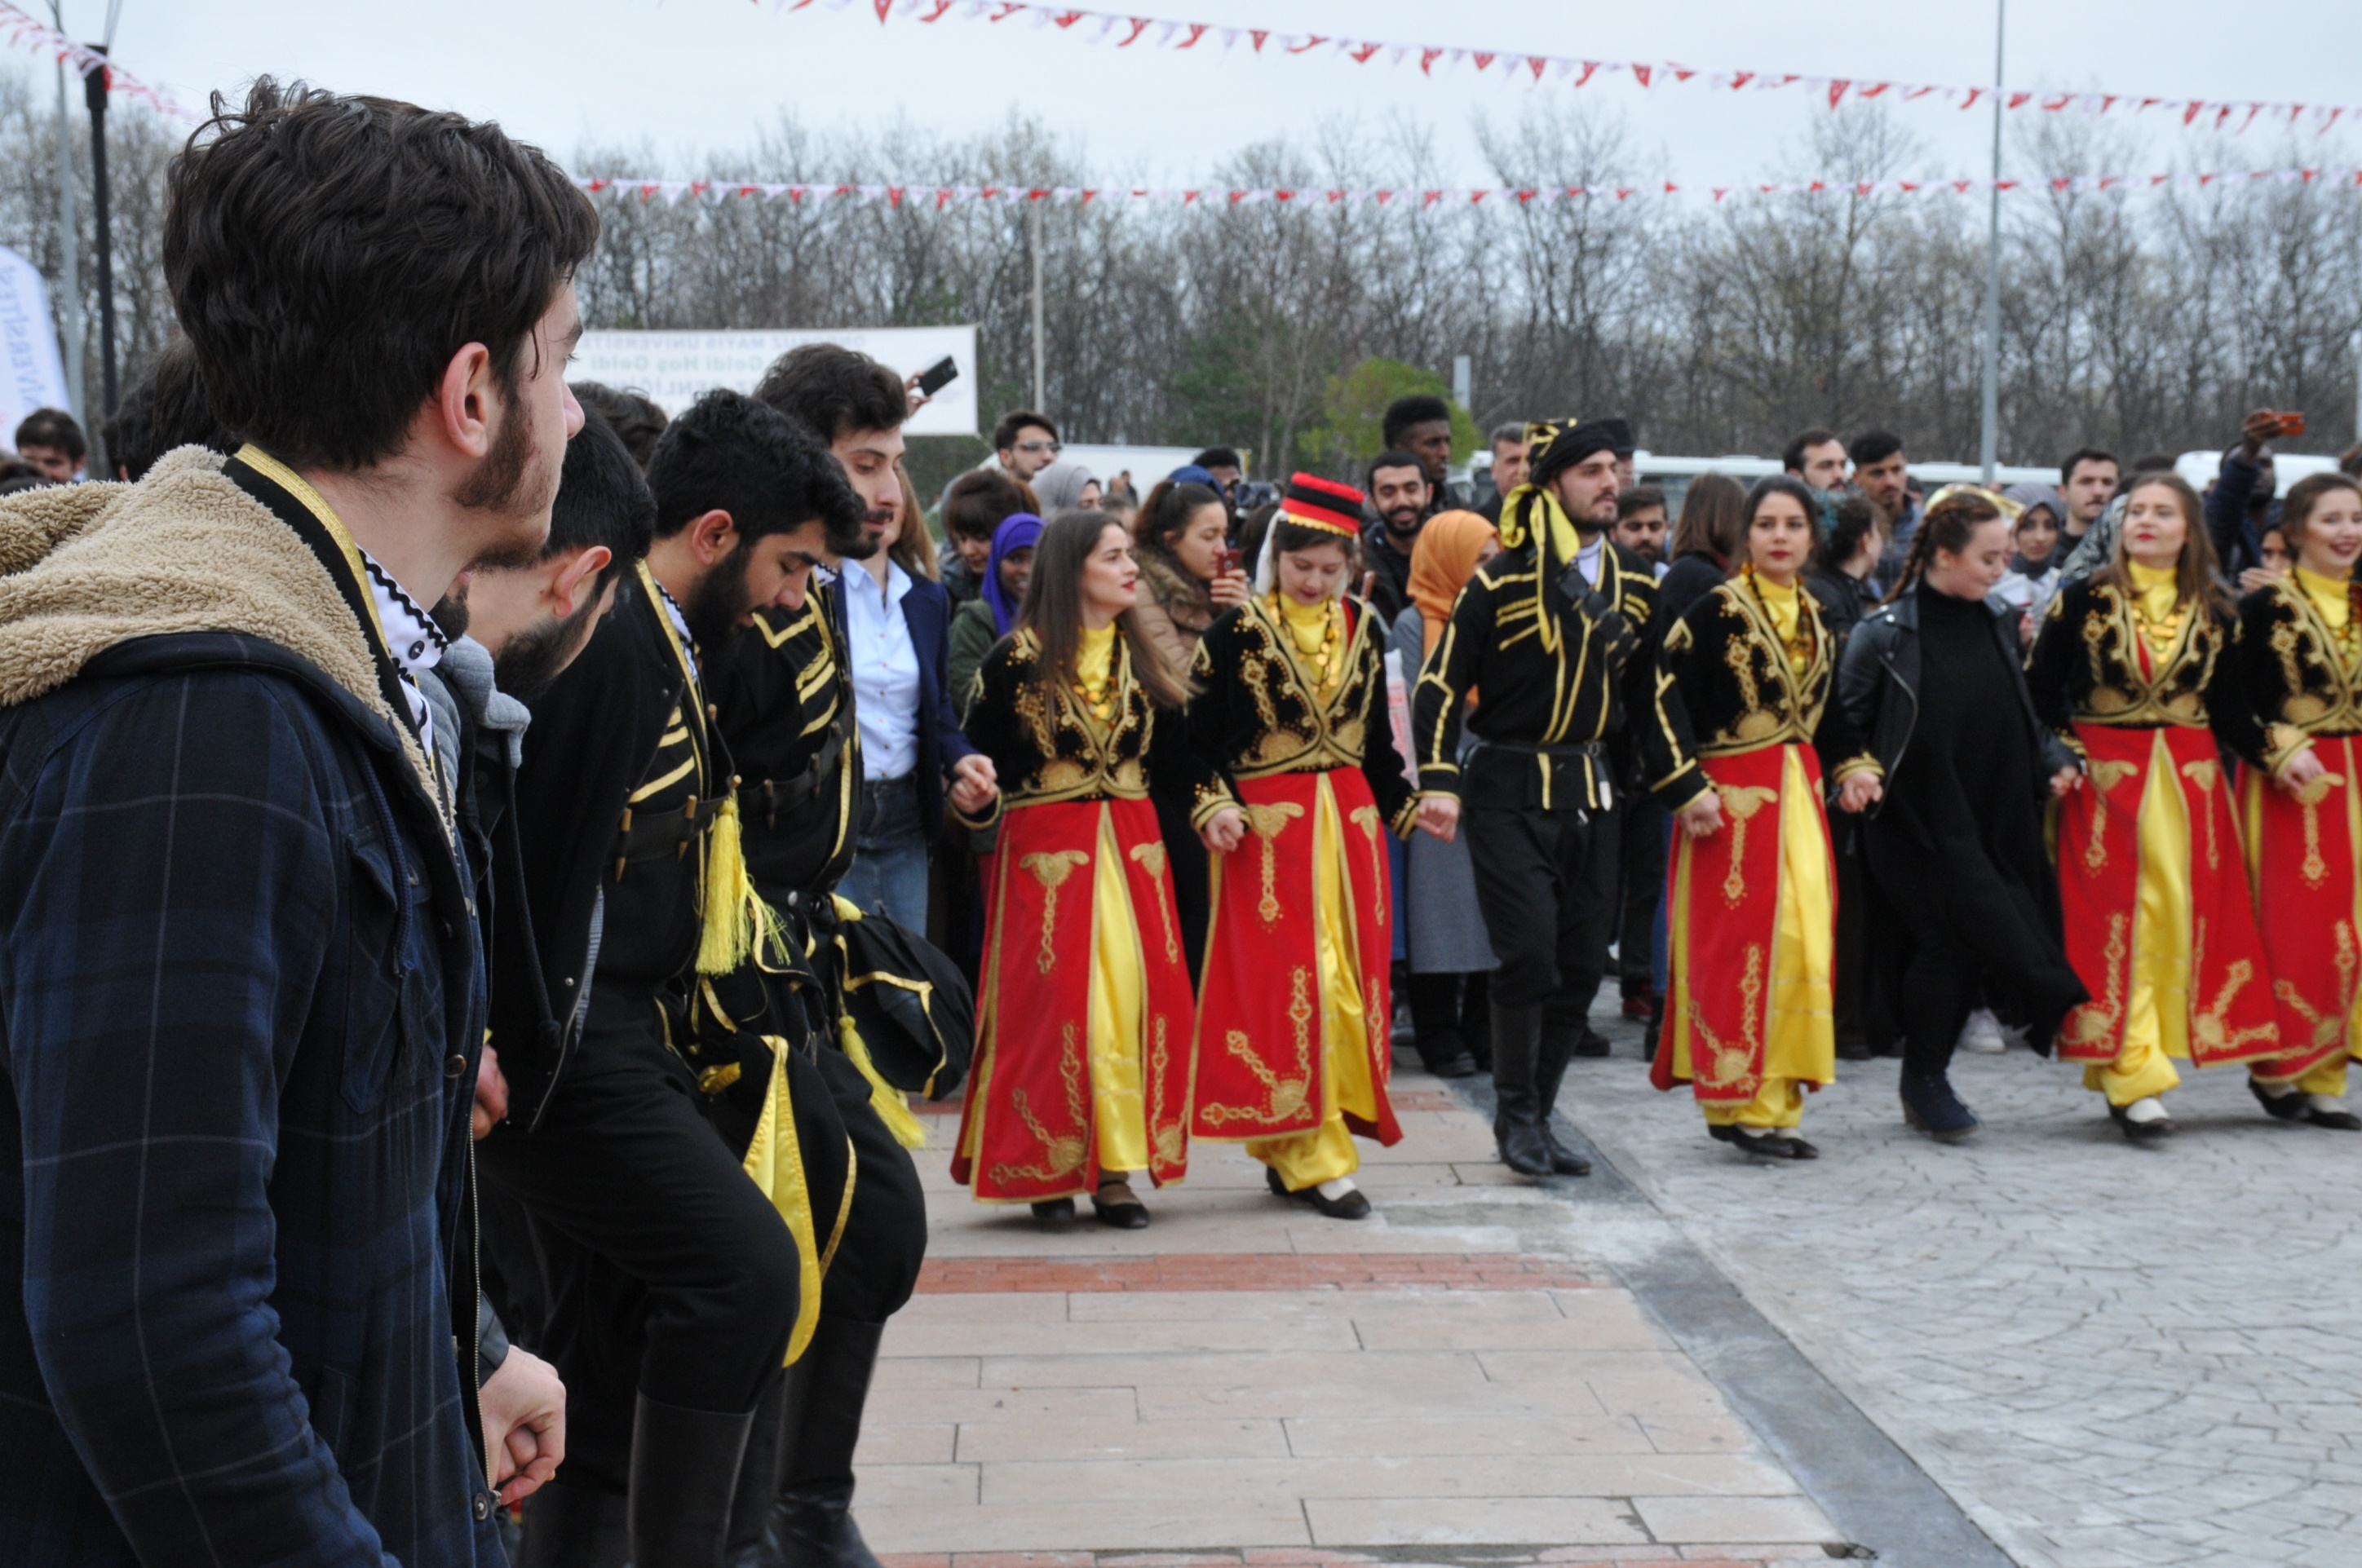 http://www.omu.edu.tr/sites/default/files/files/omu_family_enthusiastically_celebrated_newroz/dsc_0173.jpg